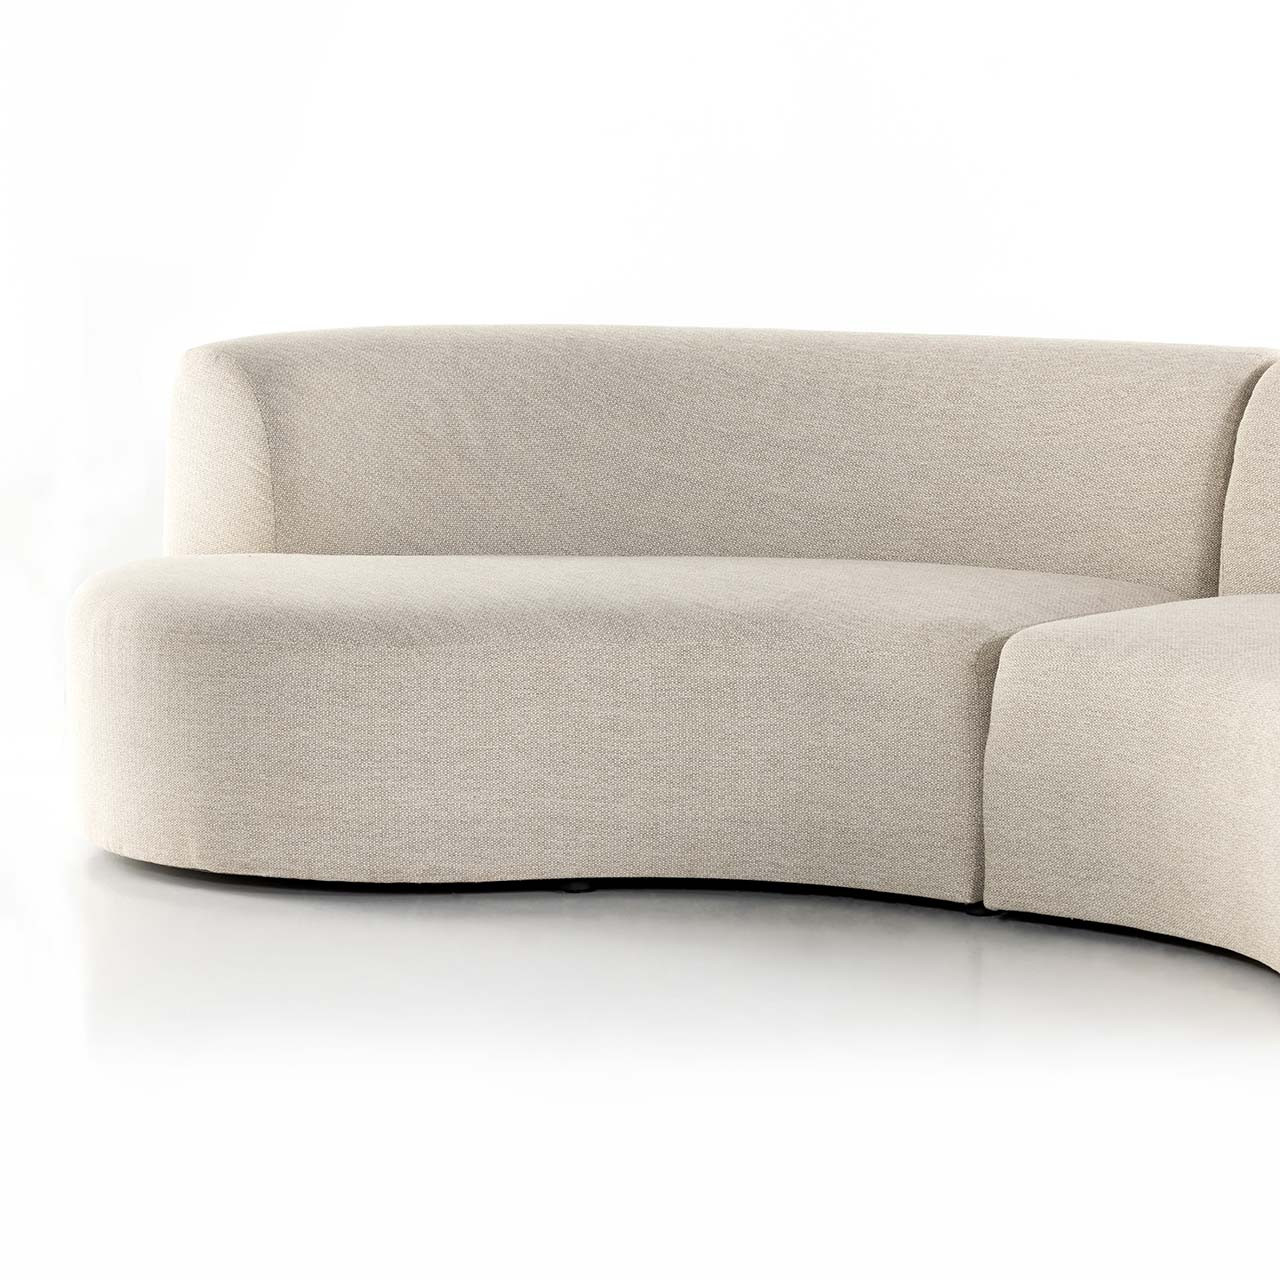 Olorey Outdoor 2-pc Sectional